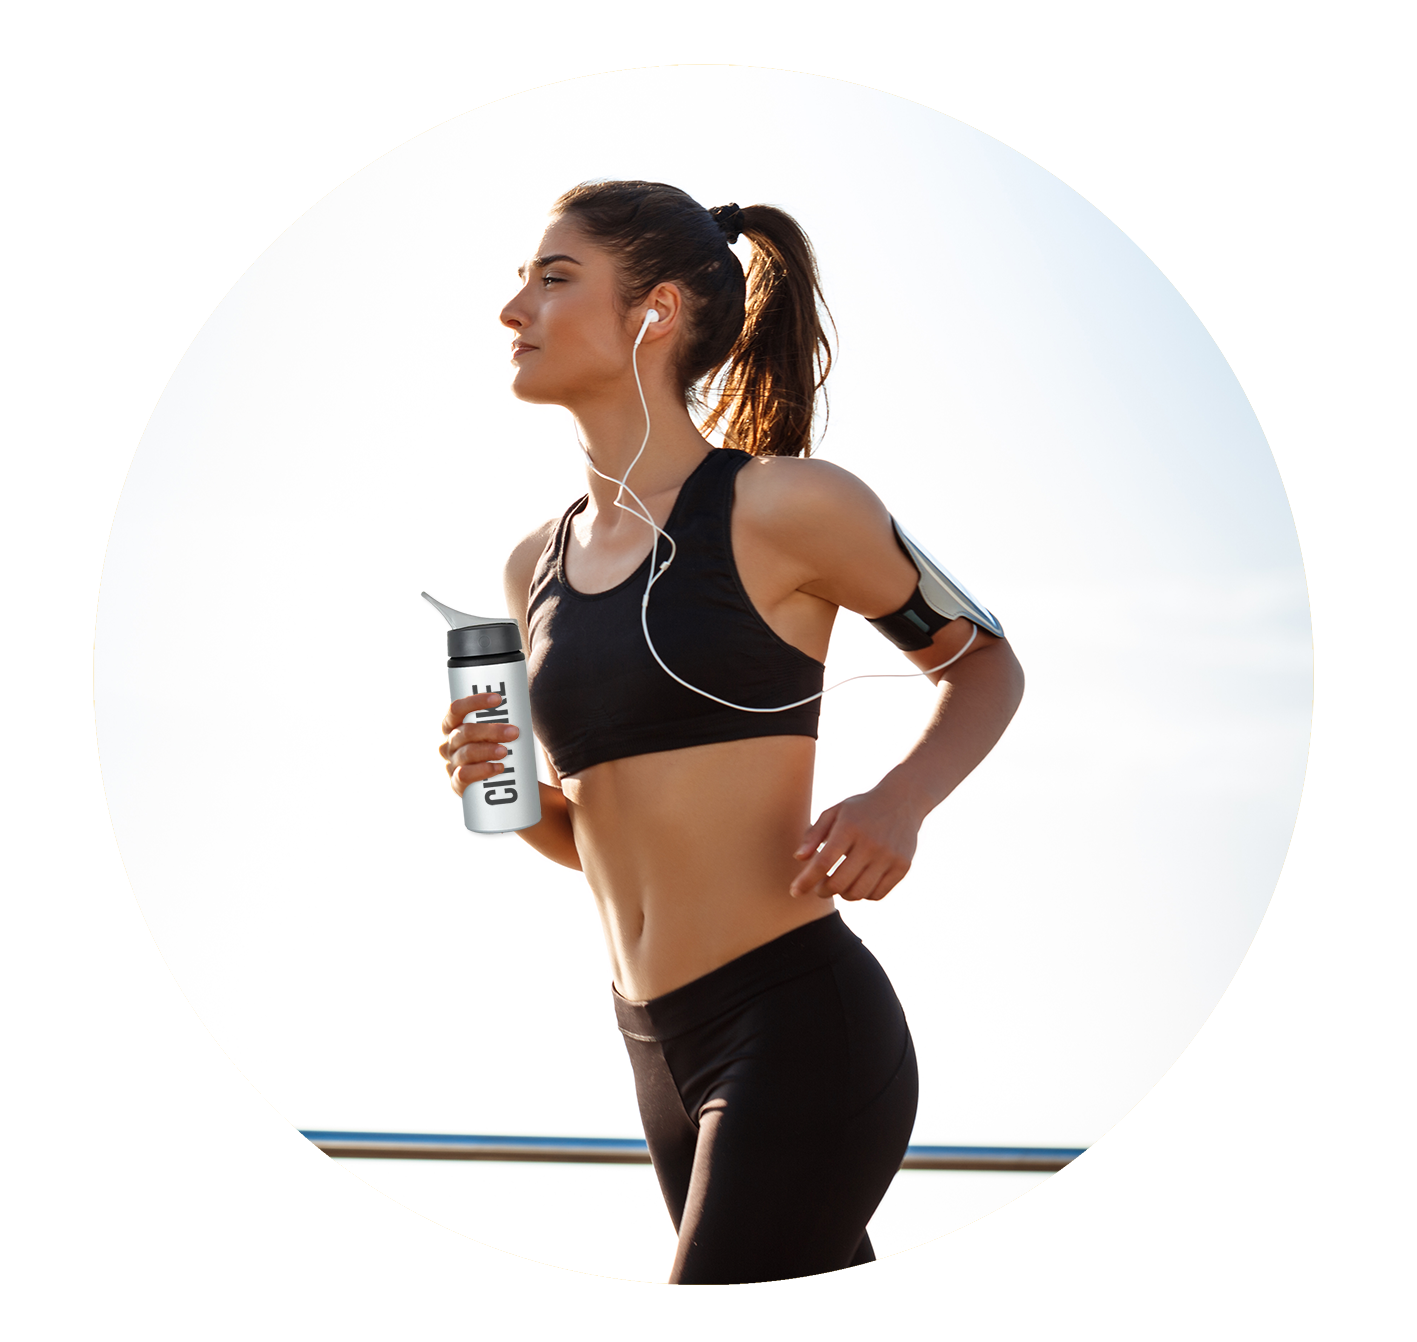 Promotional running bottle earphones and armband